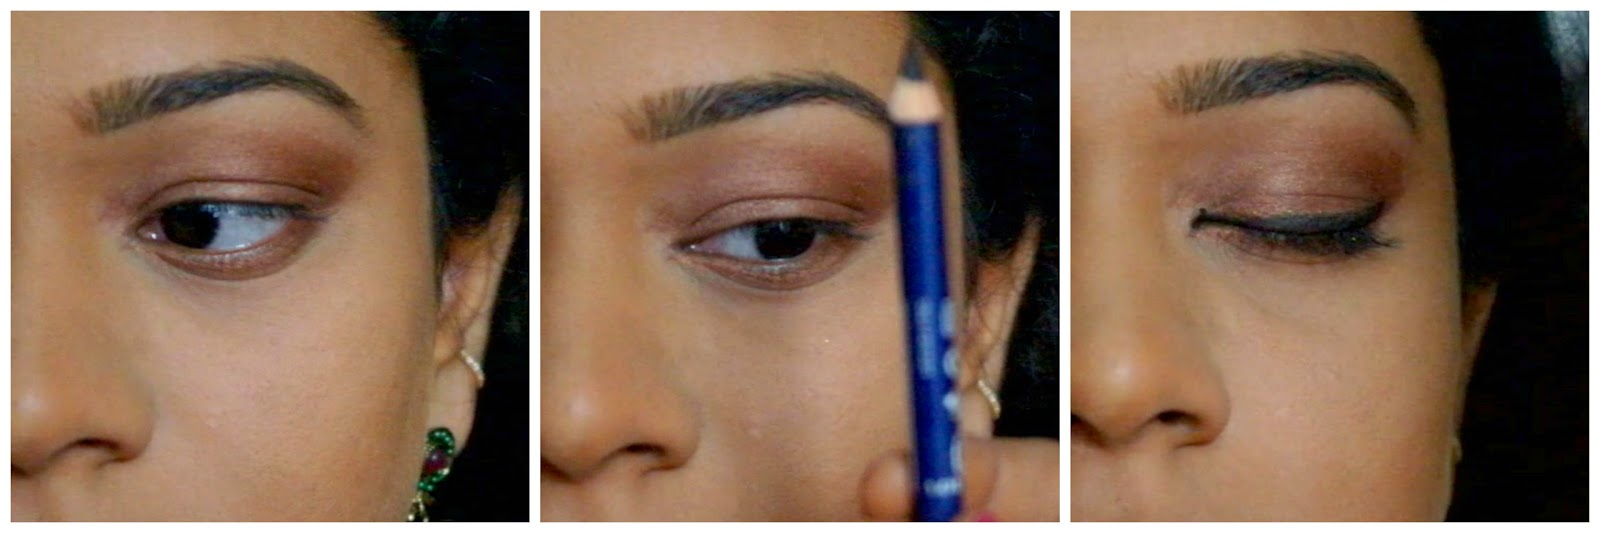 bridal eyemakeup-bridal eyemakeup tips-bridal eyemakeup tutorial-bridal eyemakeup pics-bridal artist in chennai-simple eyemakeup tutorial-simple eyeshadow tutorial-eyeshadow using colored eyeliner pencils-eyeshadow using khol pencil